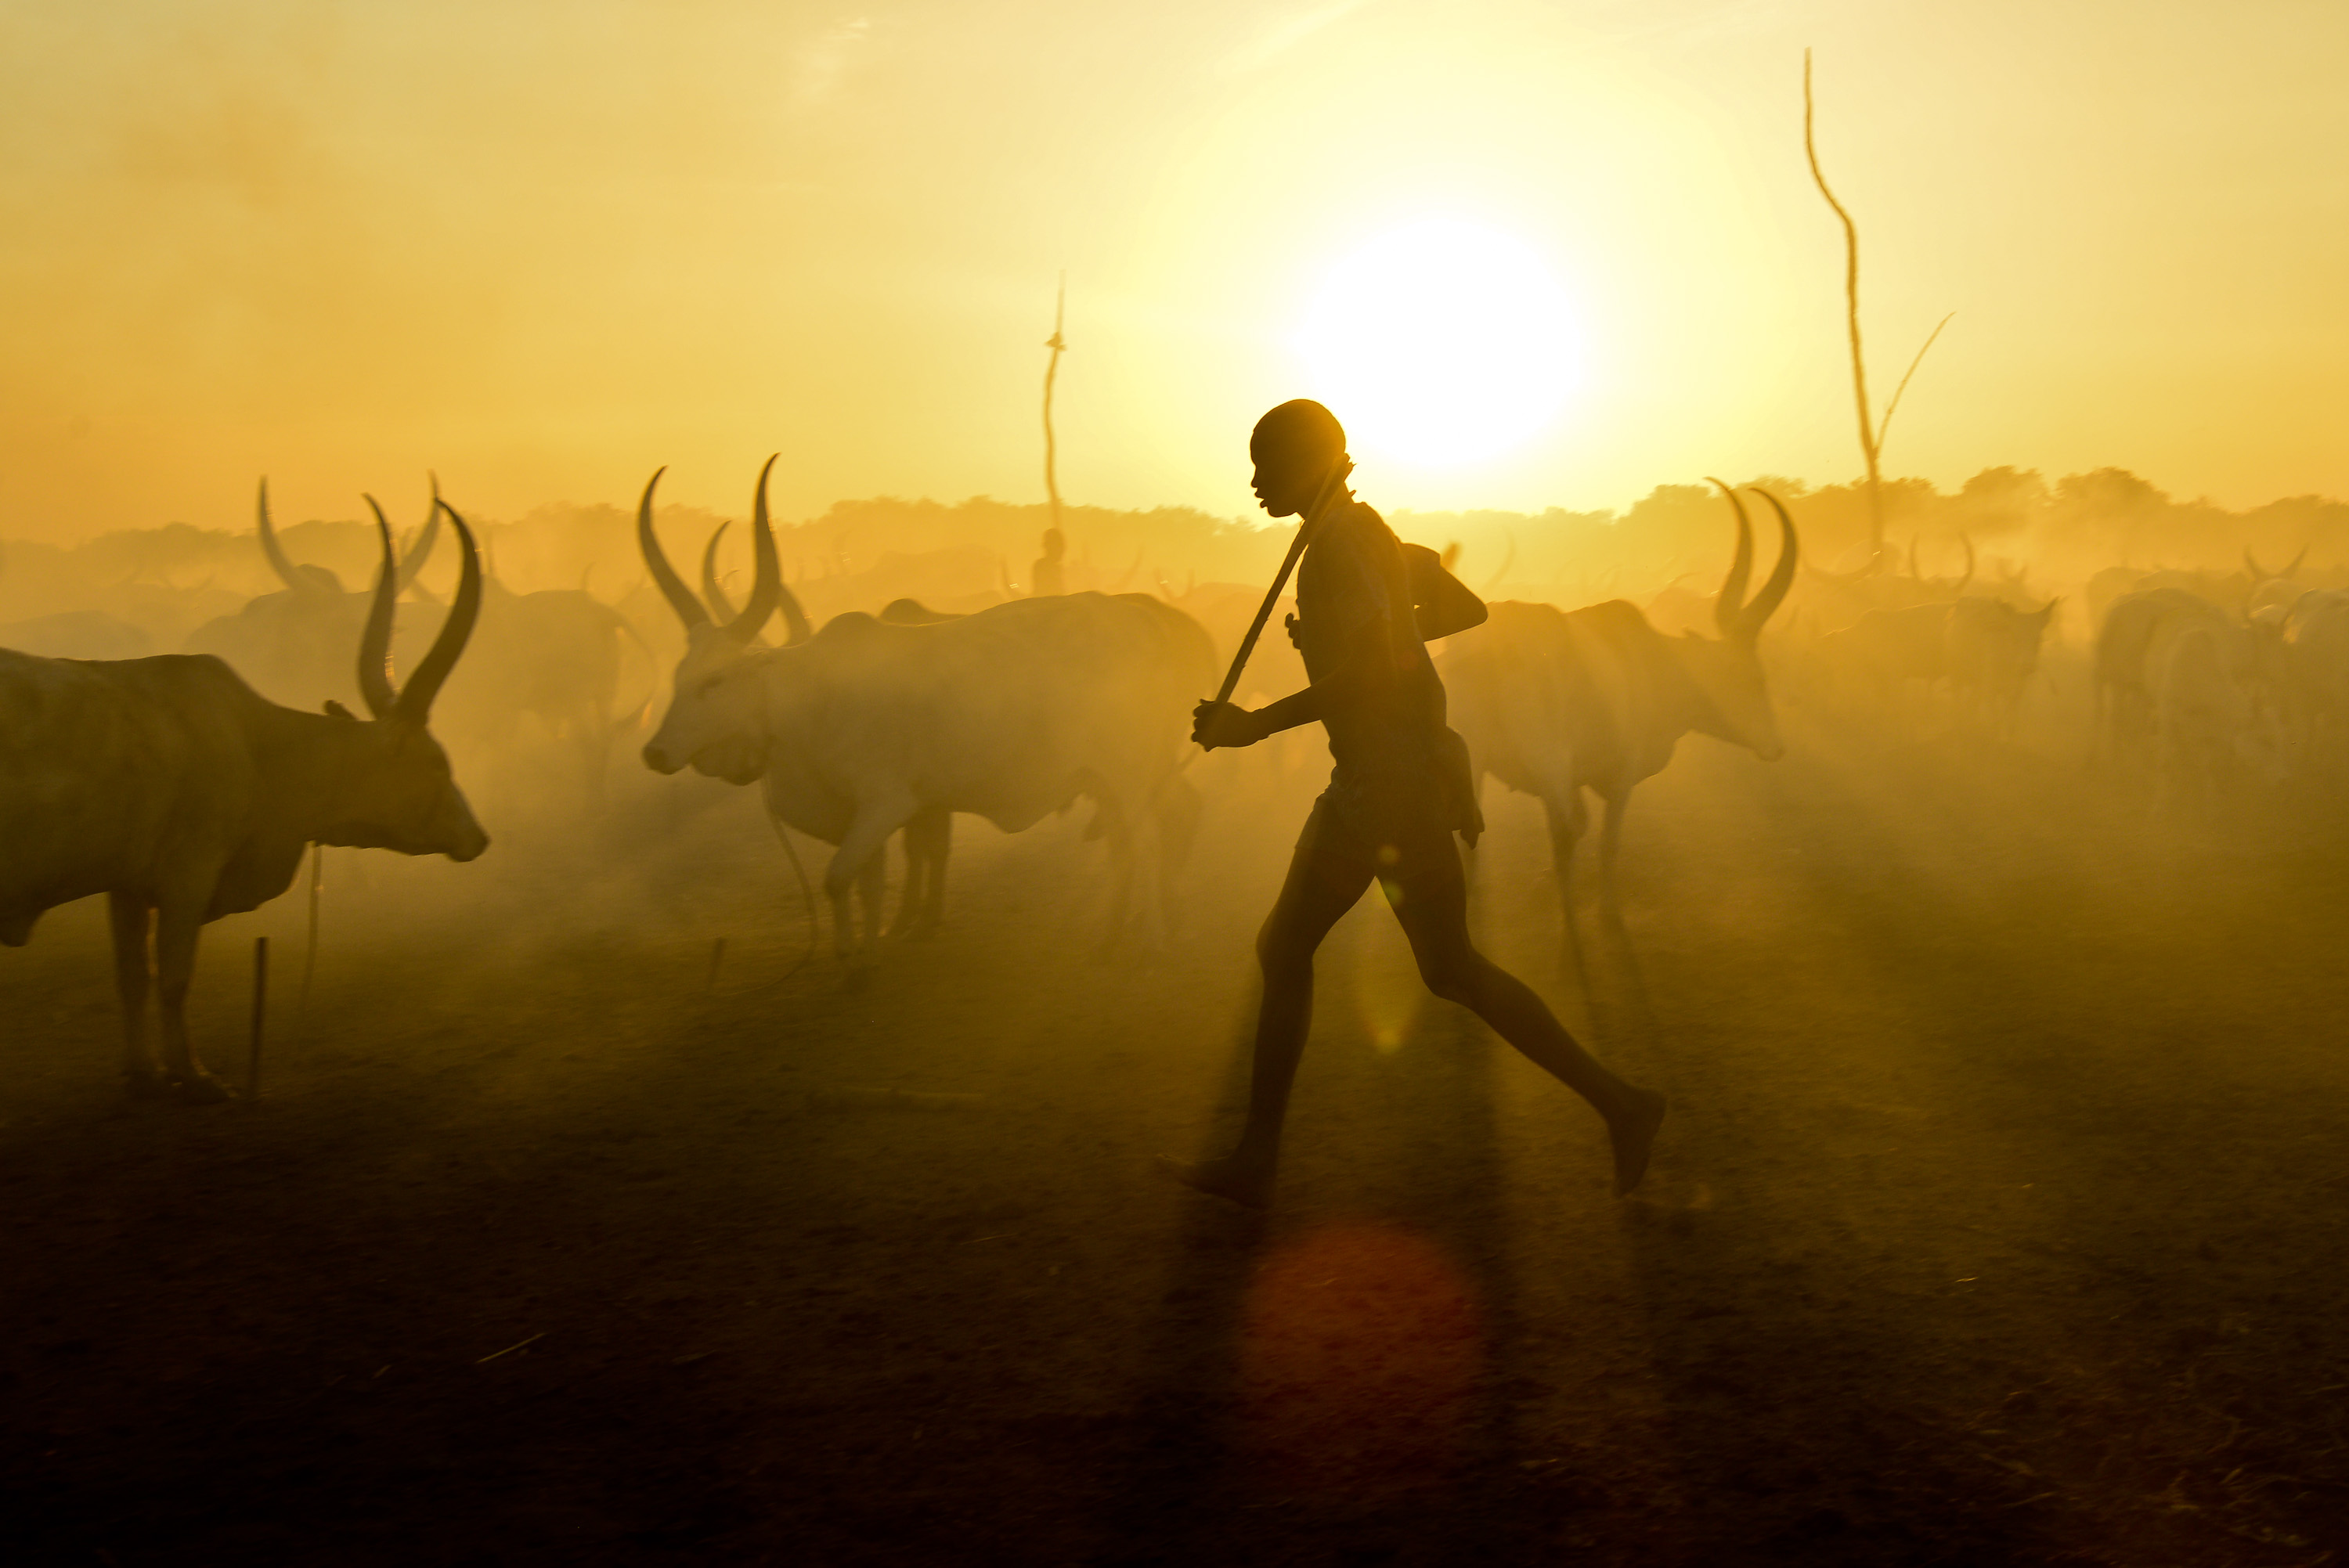 Sunset in the Mundari cattle camp.